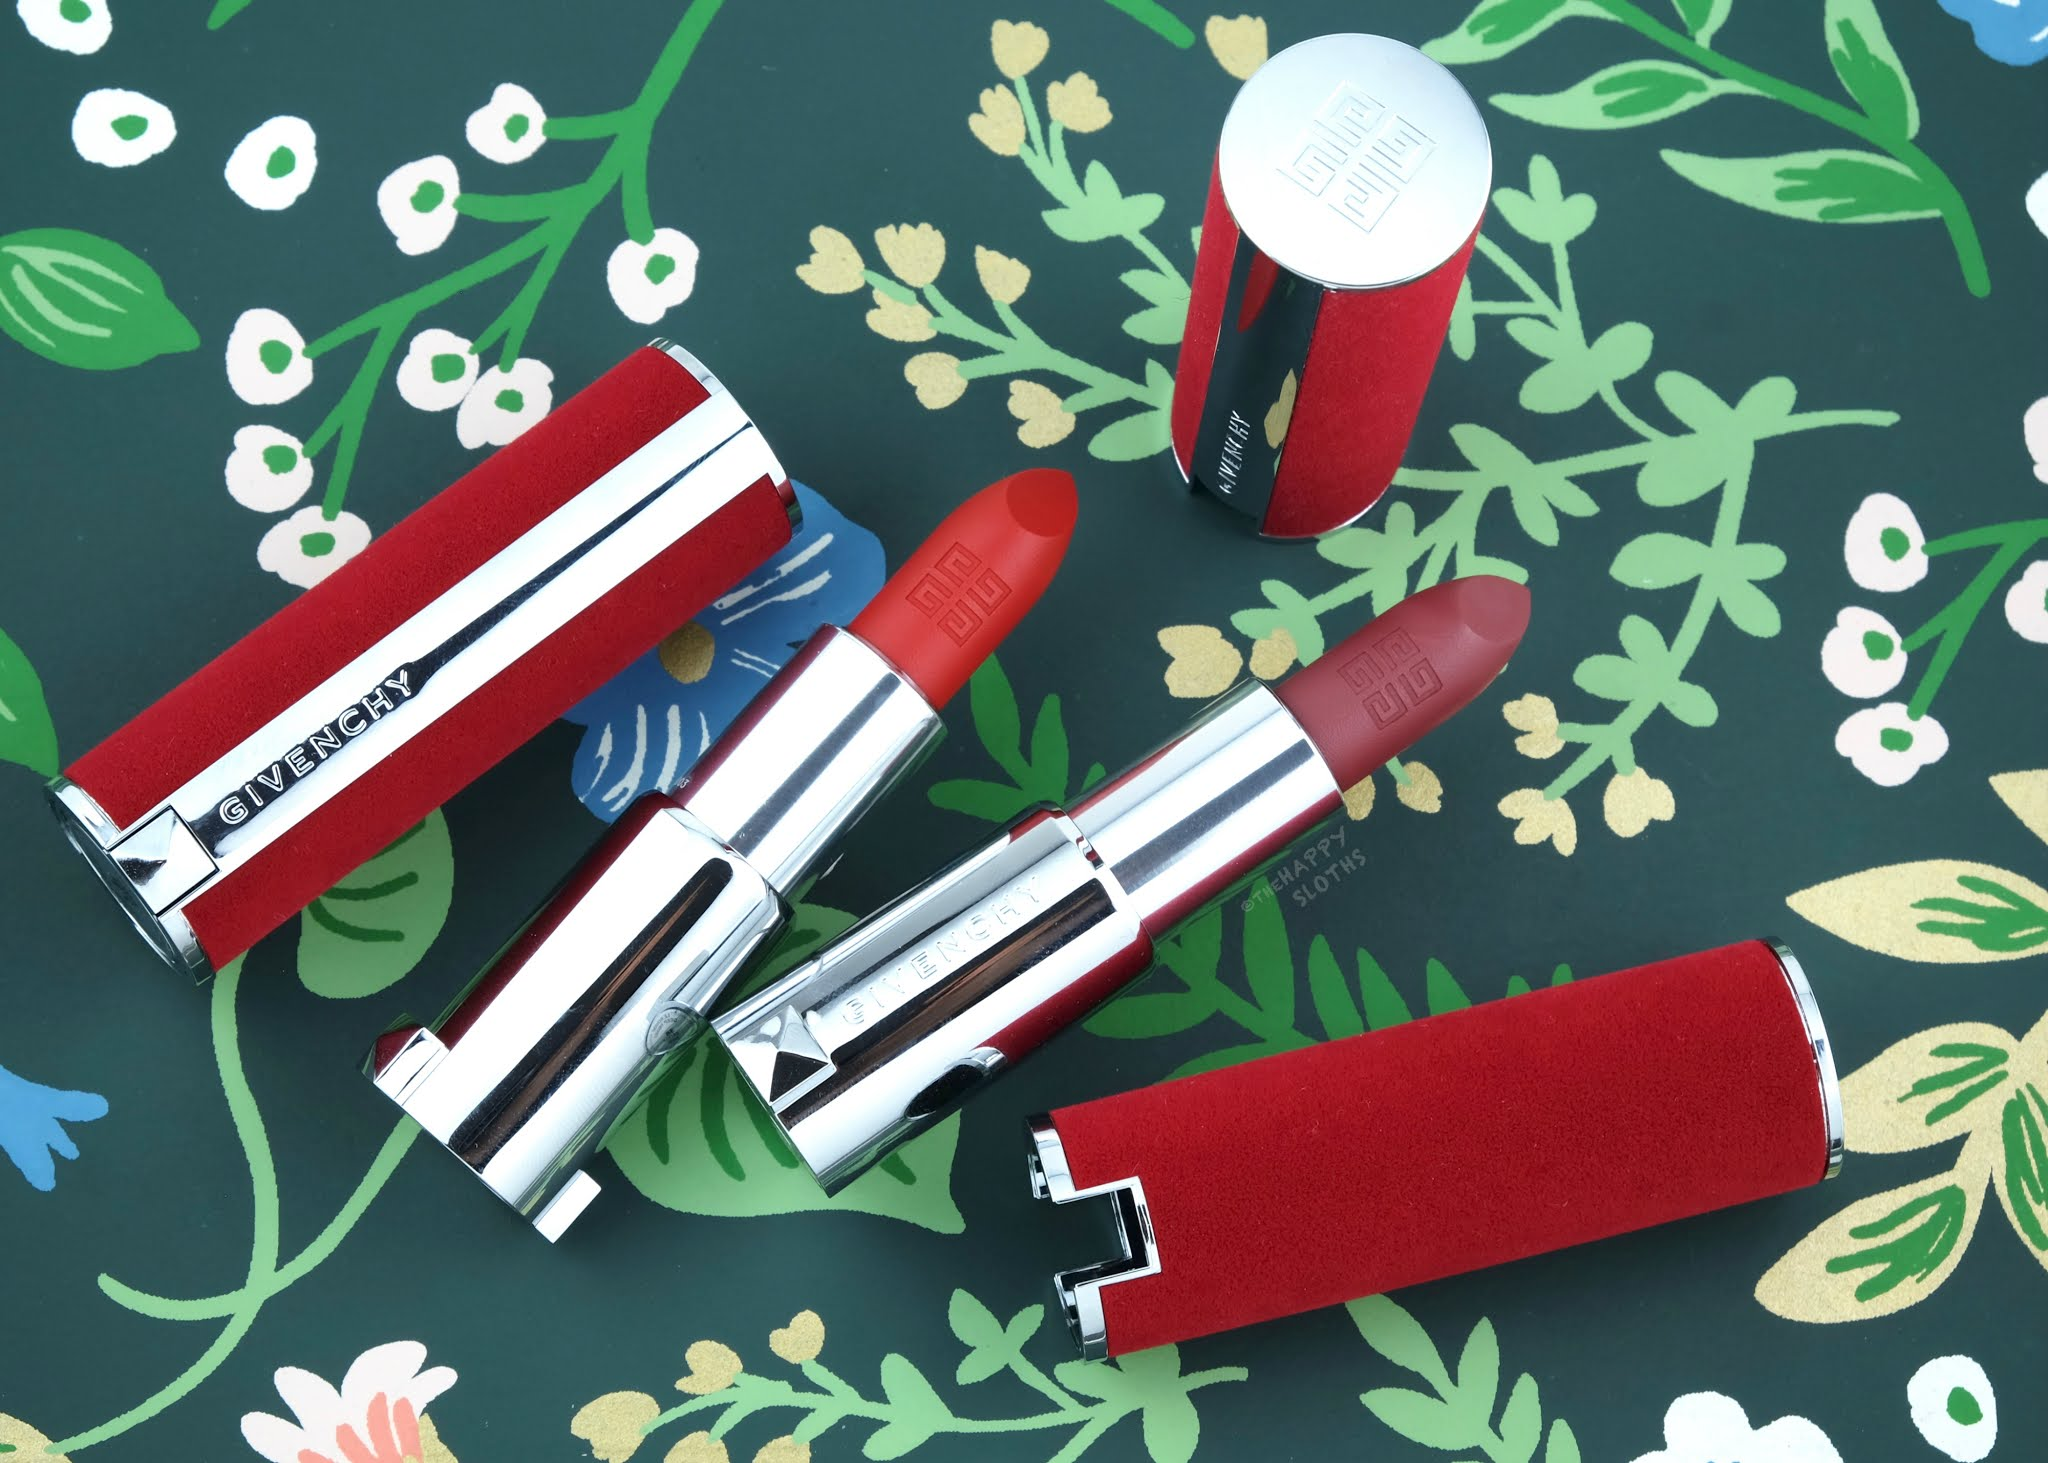 Givenchy | Le Rouge Deep Velvet Matte Lipstick: Review and Swatches